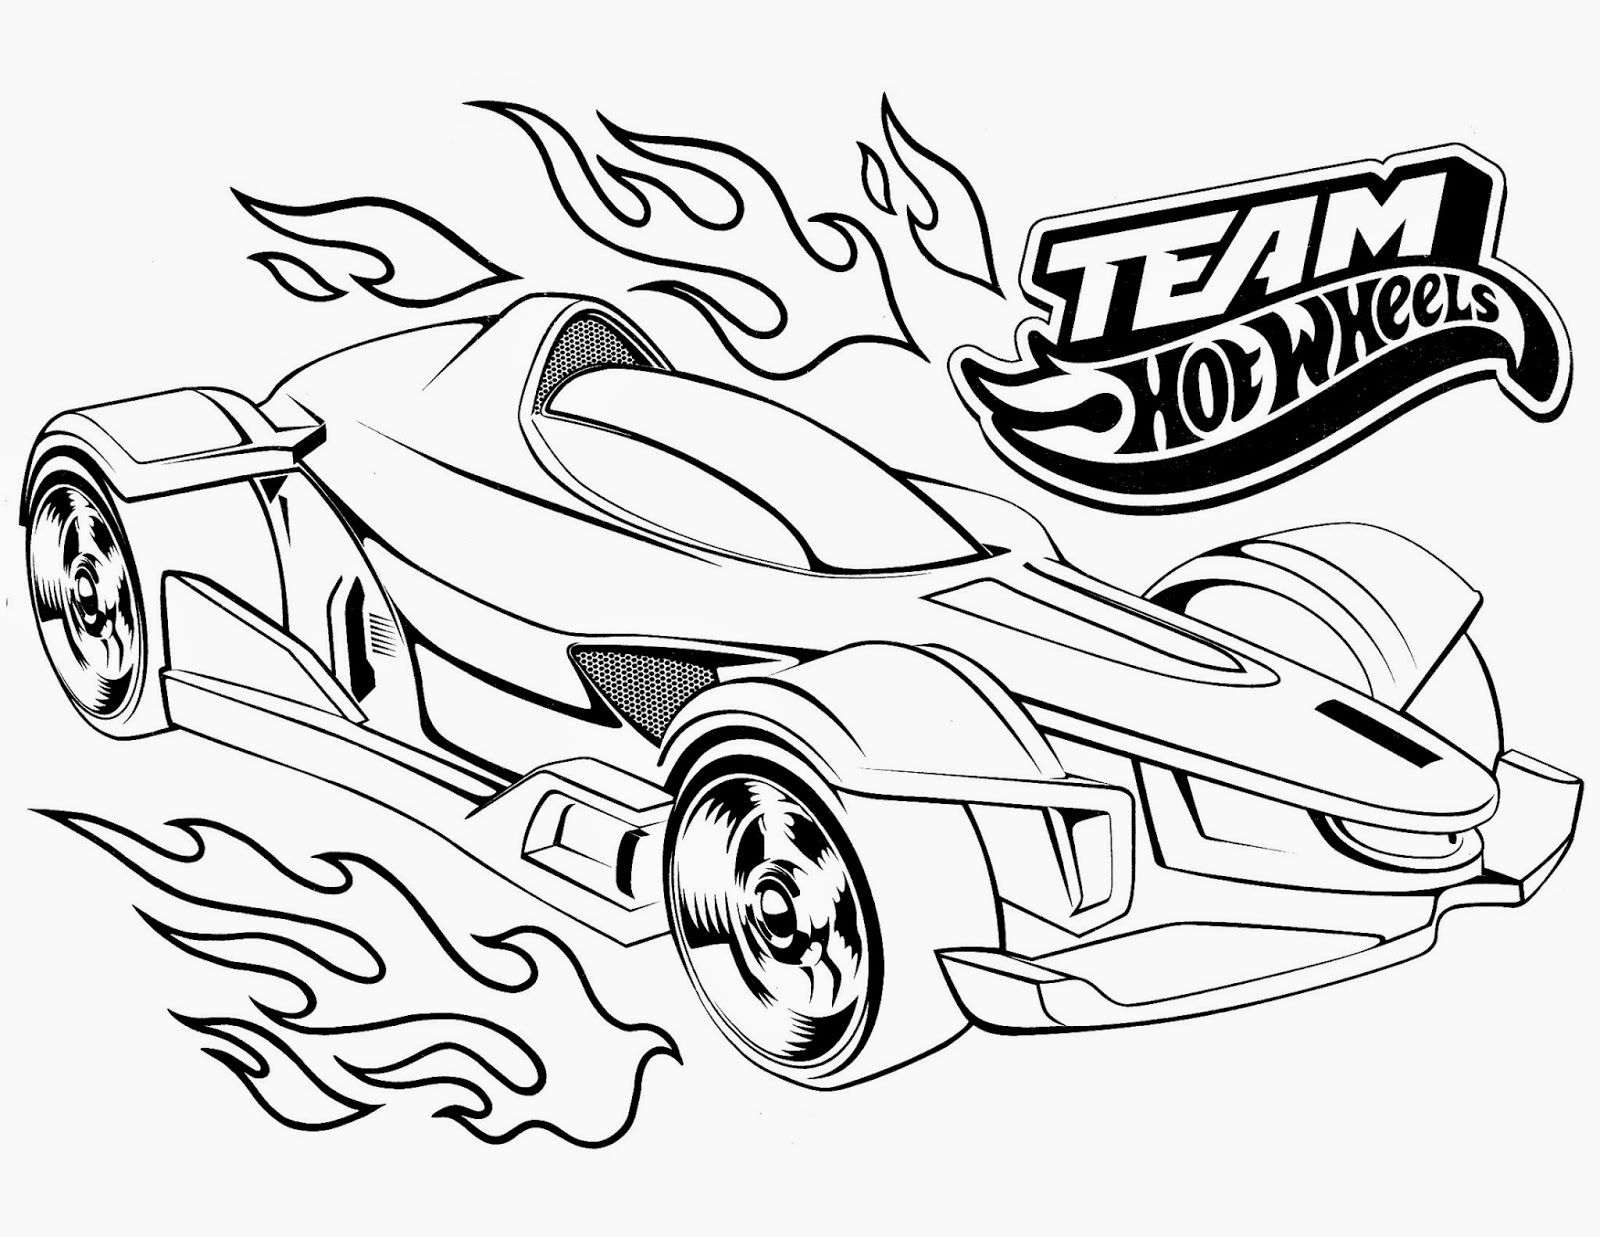 Hot Wheels Racing League Hot Wheels Coloring Pages Set 5 Race Car Coloring Pages Cars Coloring Pages Truck Coloring Pages